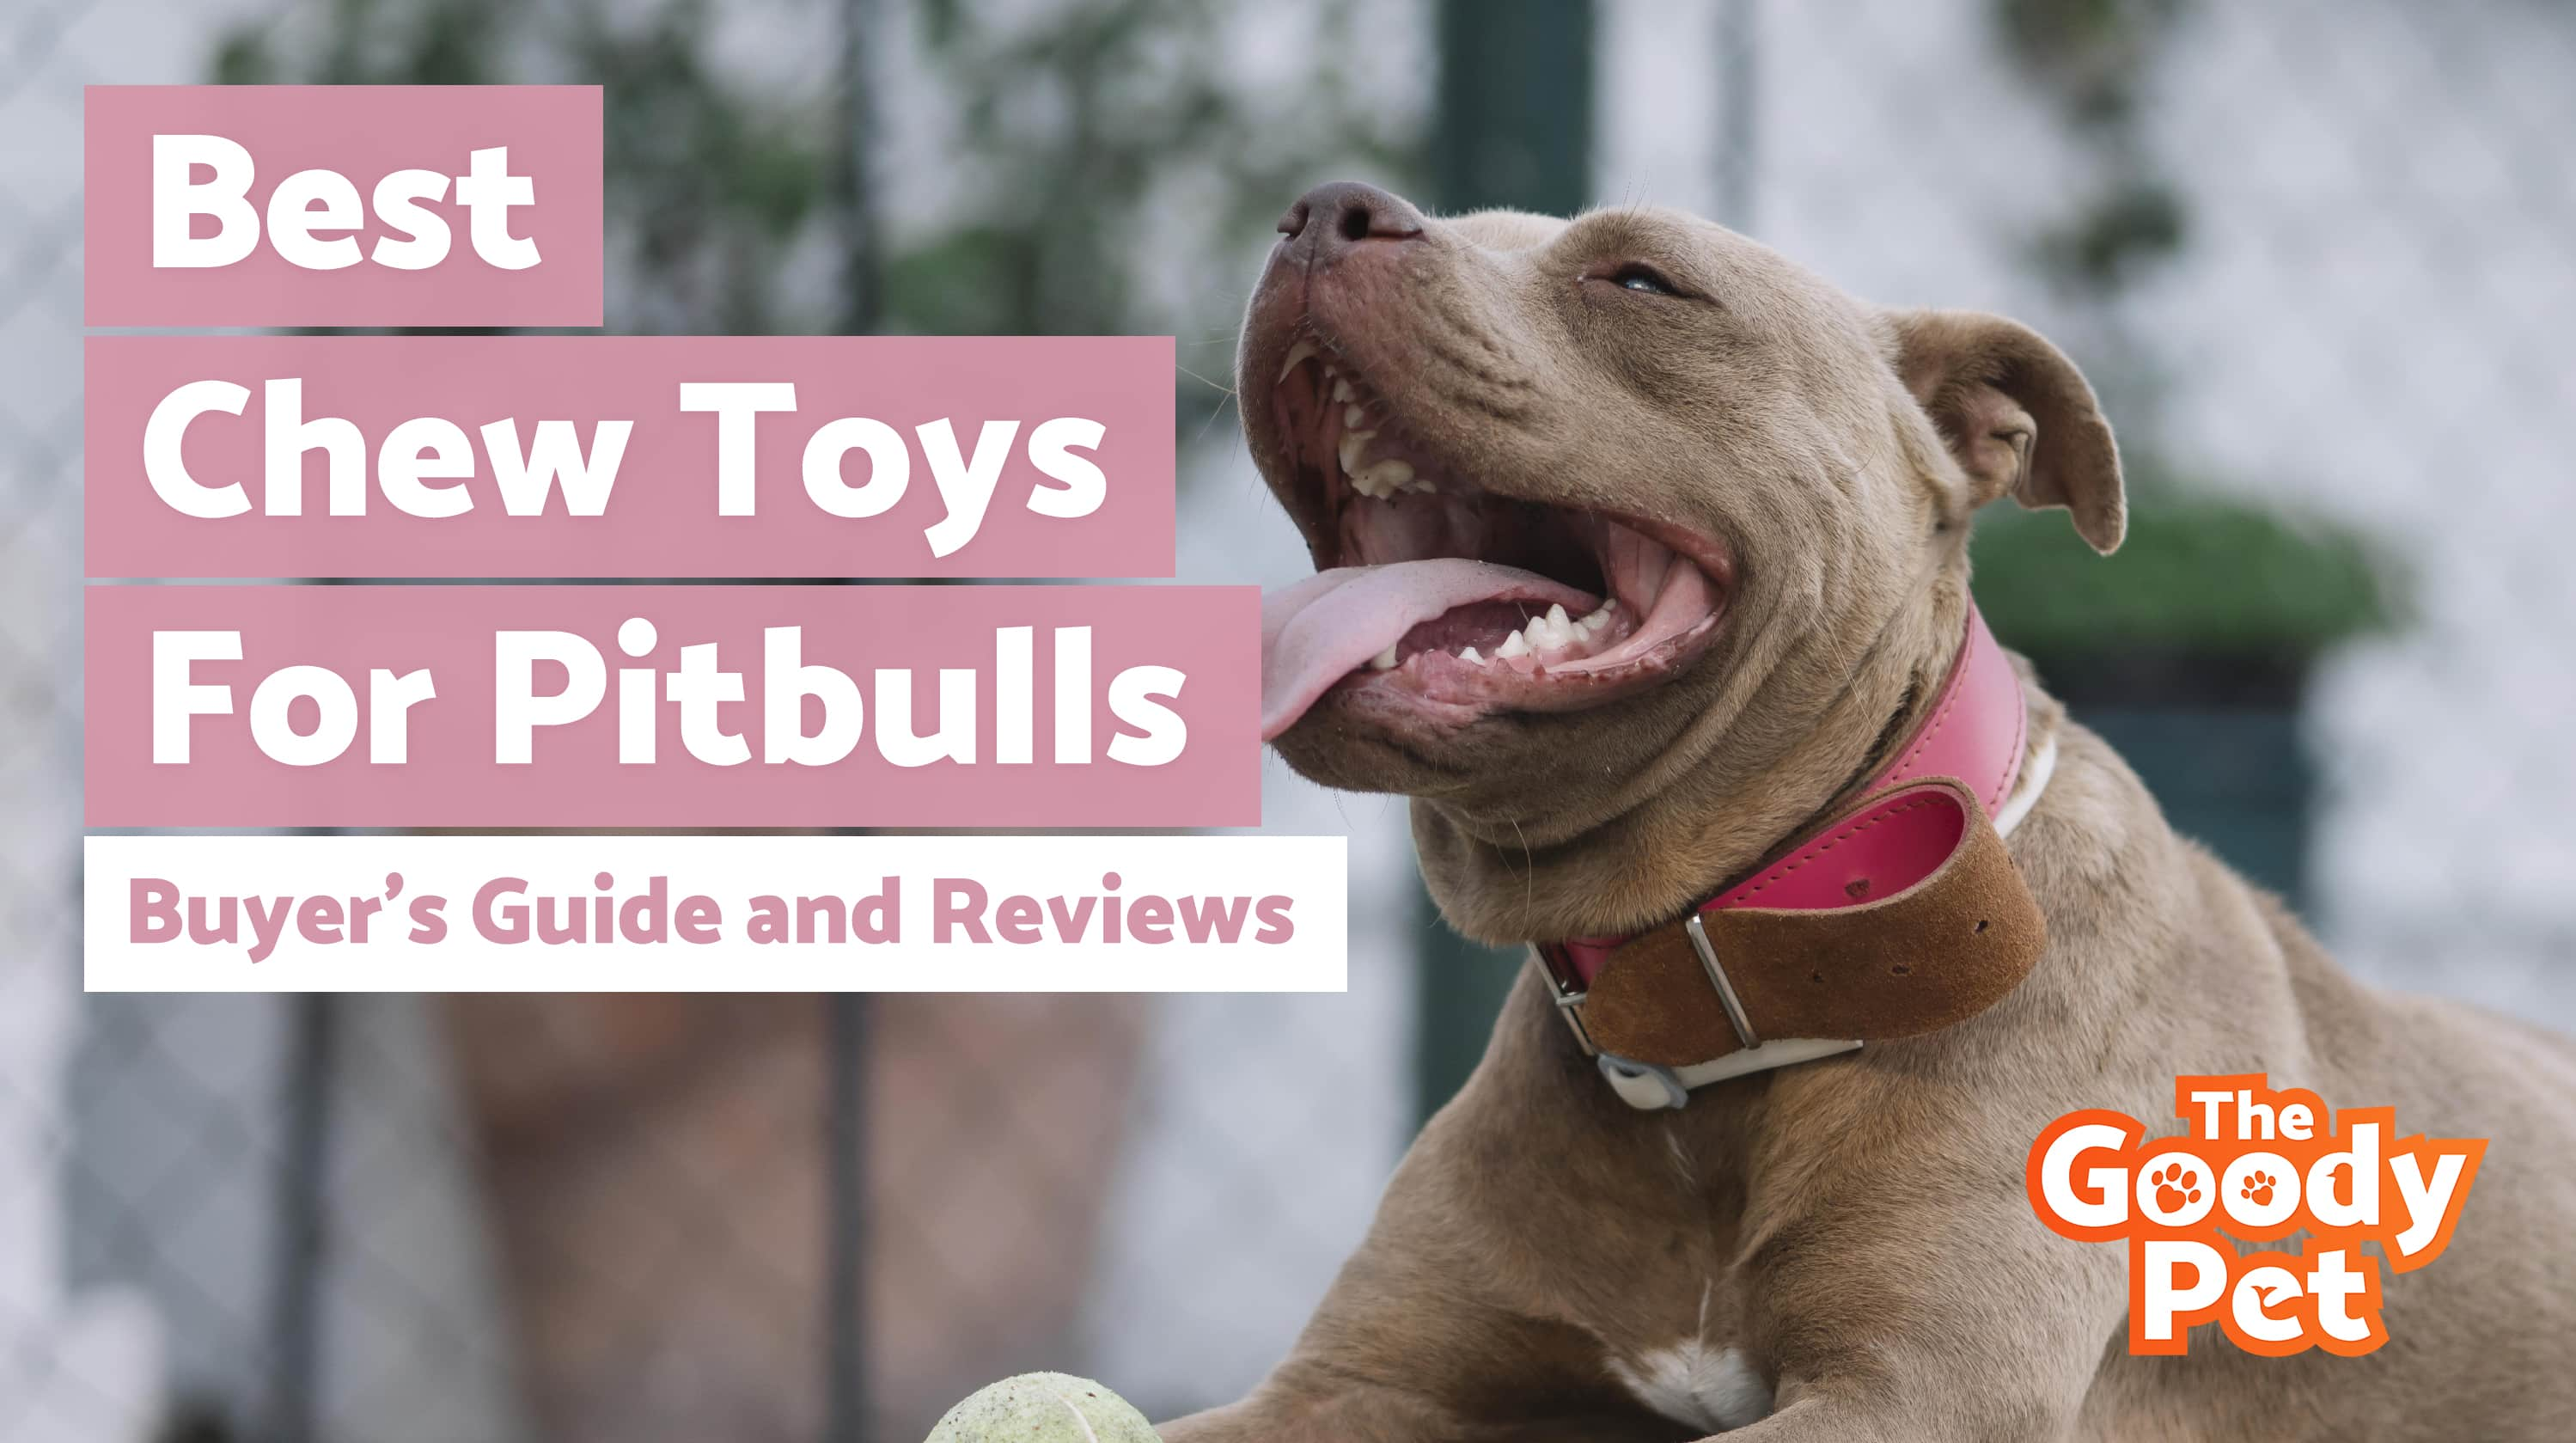 Best Indestructible Dog Chew Toys For Pit Bulls – Our 2019 Reviews & Top Picks